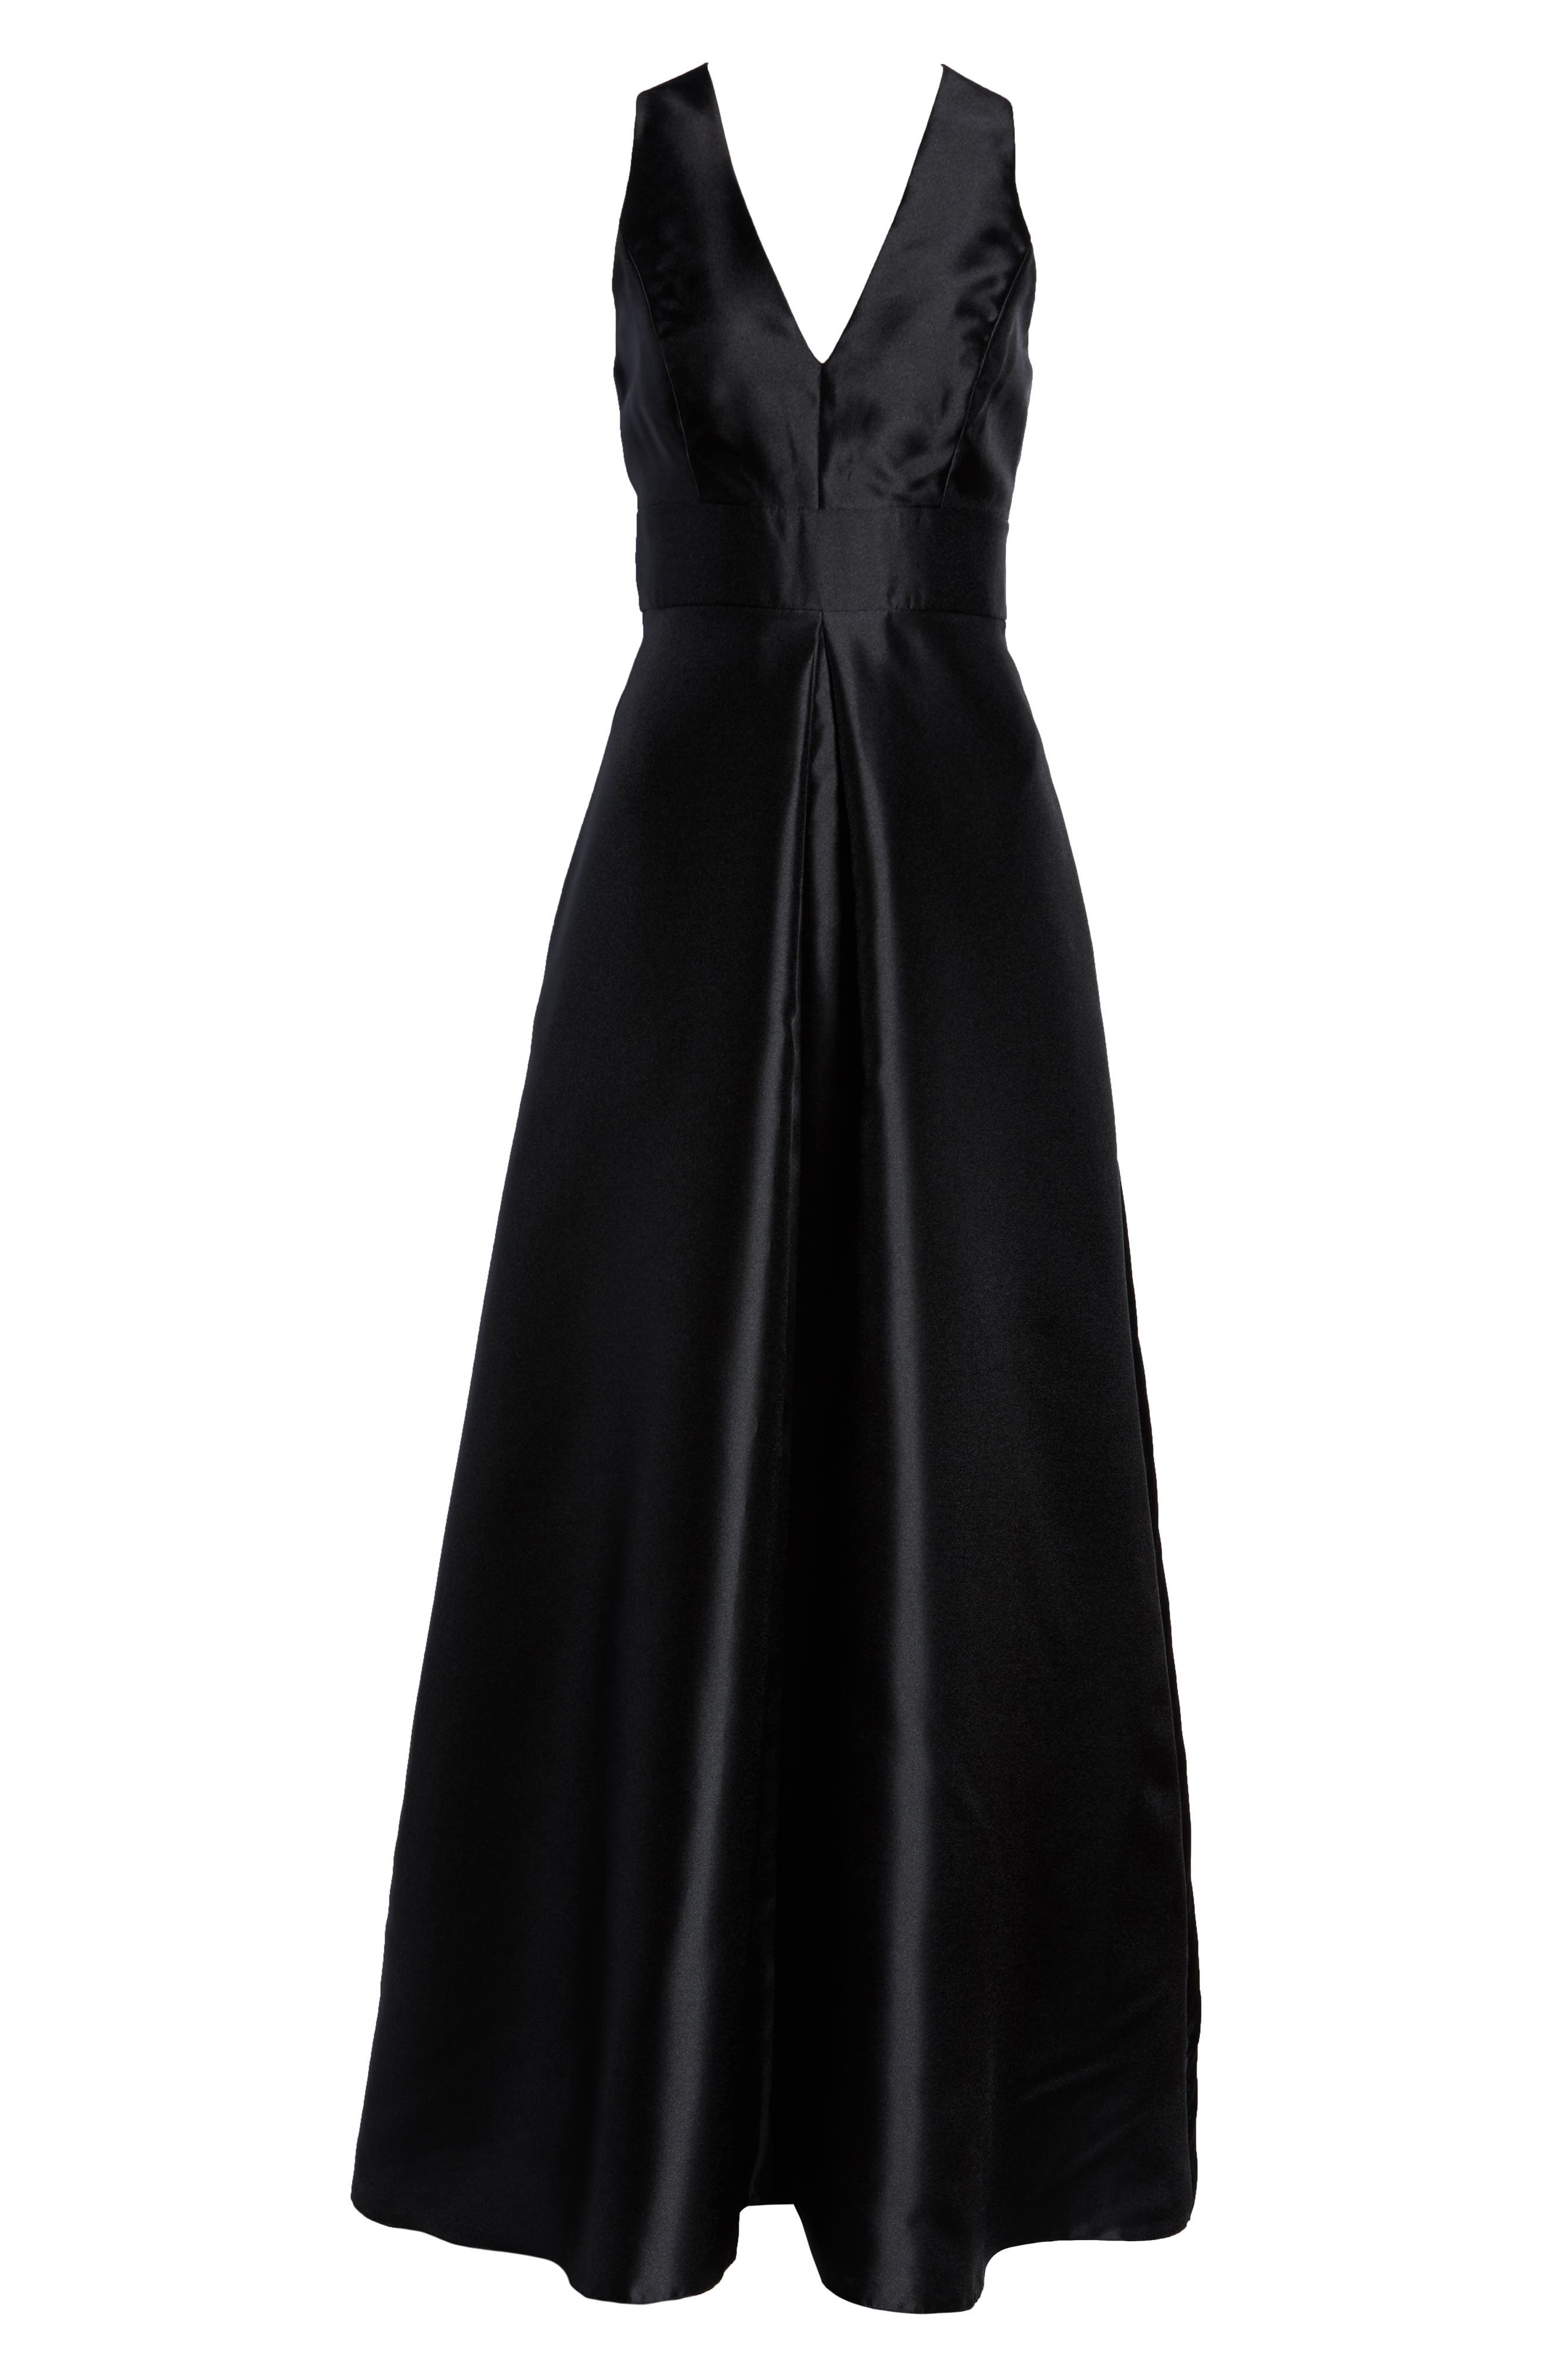 ALFRED SUNG, Sleeveless Sateen Gown, Alternate thumbnail 3, color, BLACK